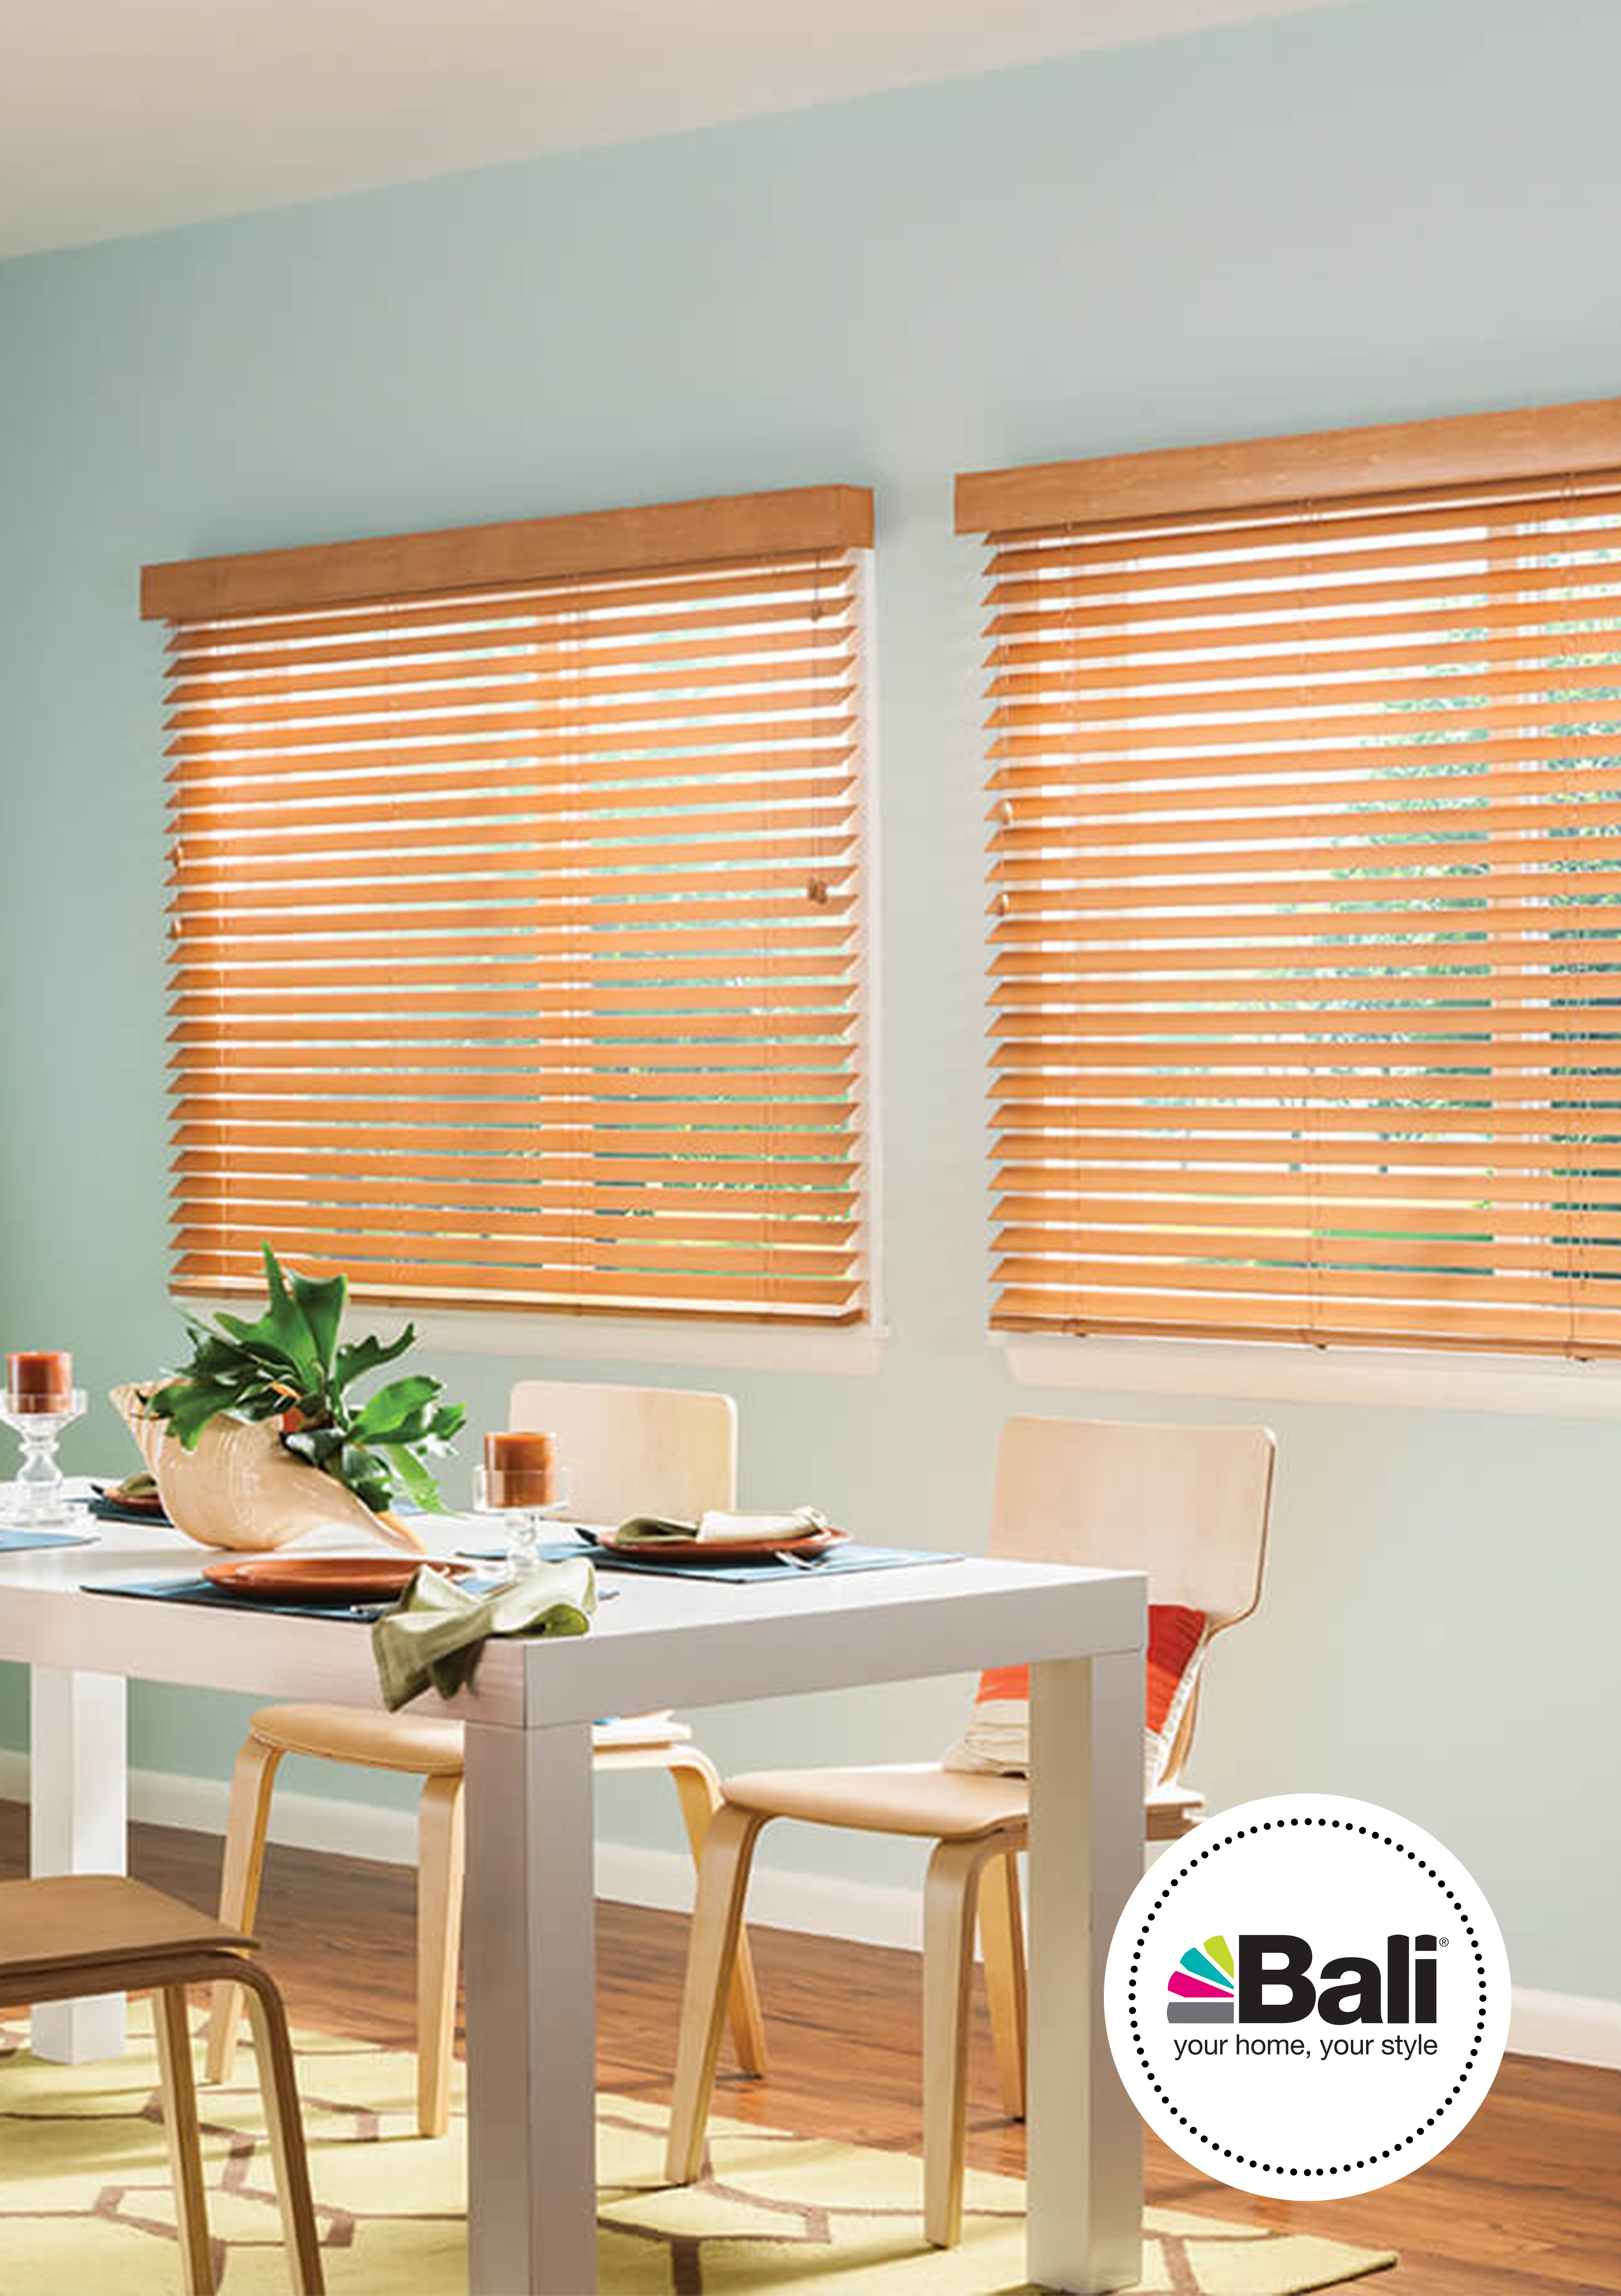 2 Quot Value Wood Blinds With Cord Tilt And 3 Quot Standard